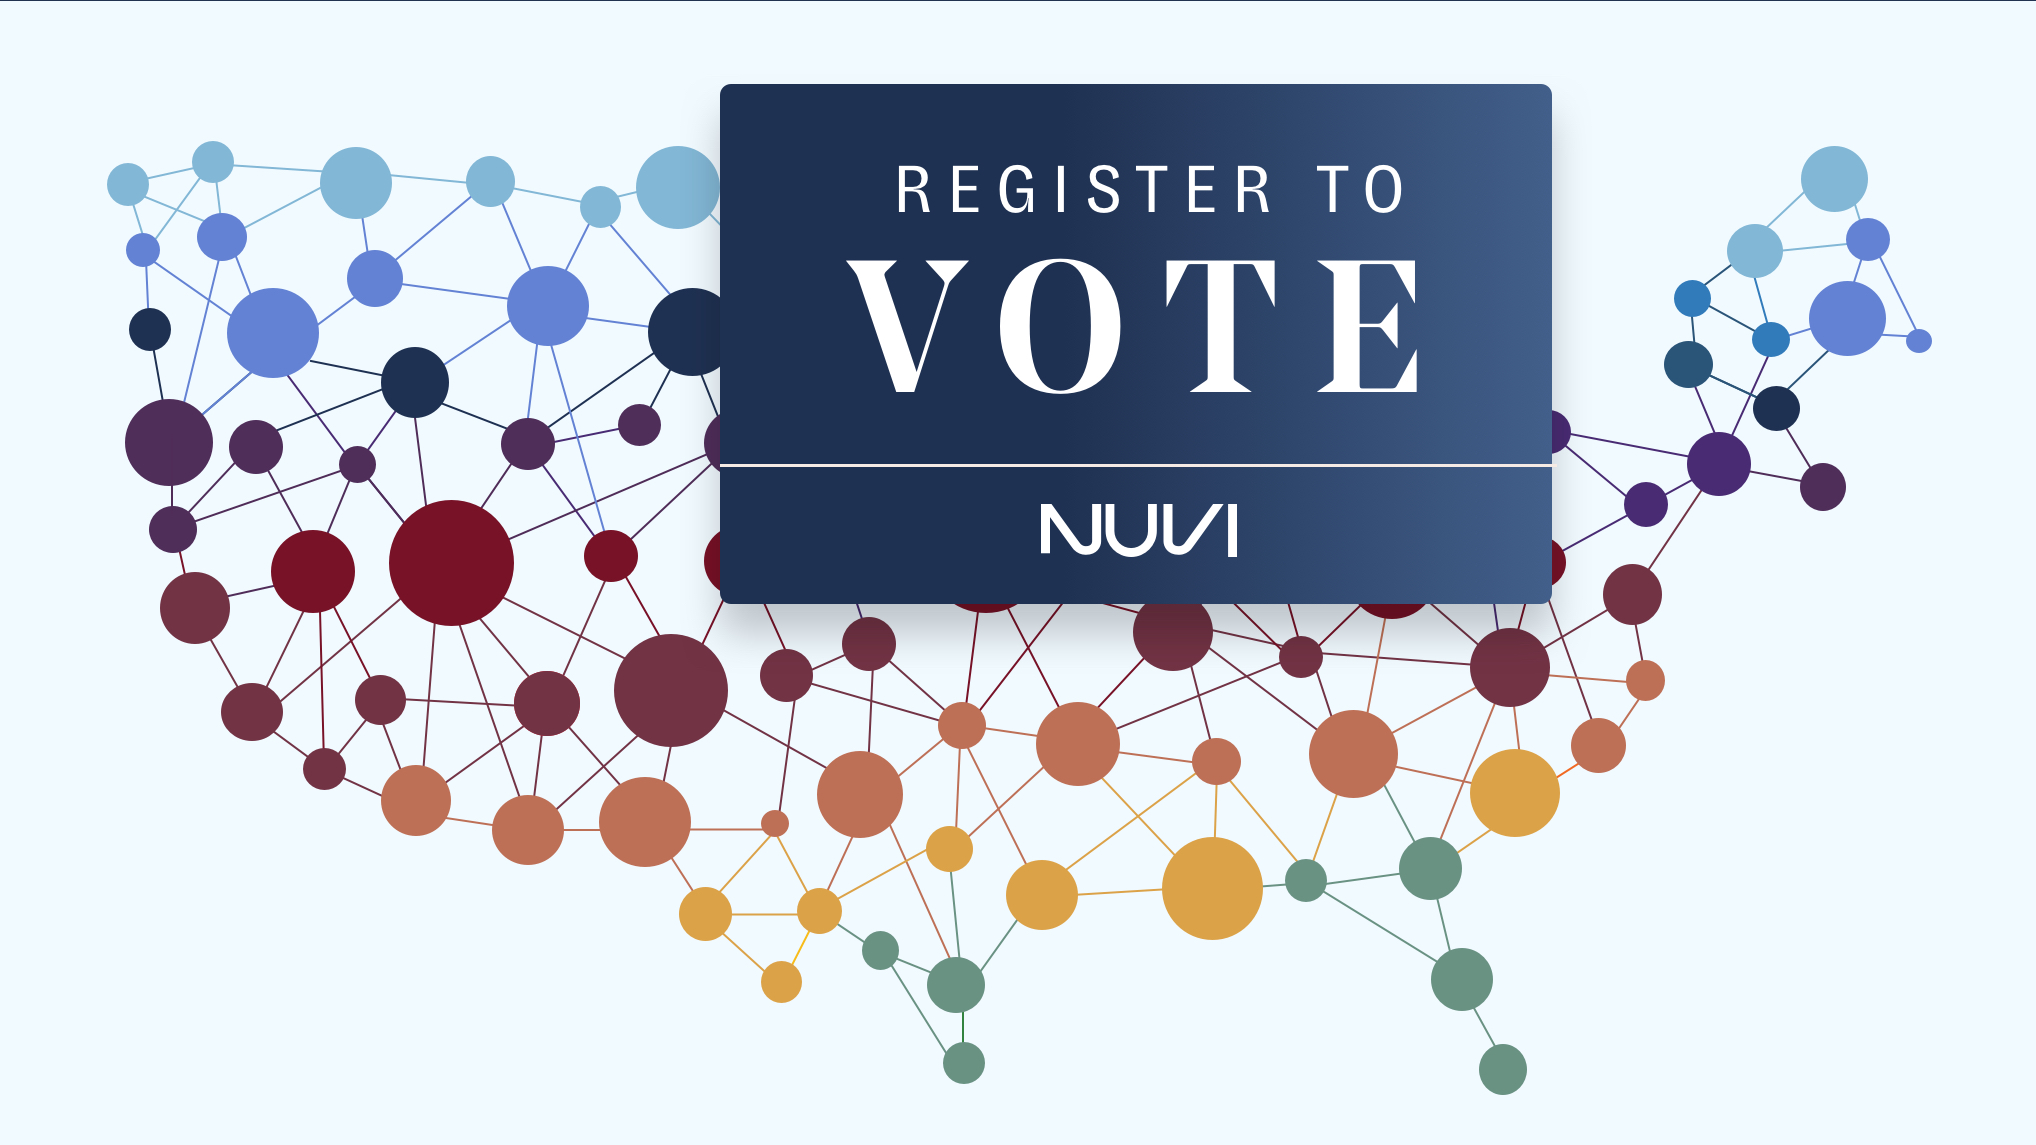 Nuvi, a social media monitoring company, uses dots with connecting lines to represent the United States. The dots vary in size and go across the whole country. On top of the country is a blue box with text that reads: Register to Vote.